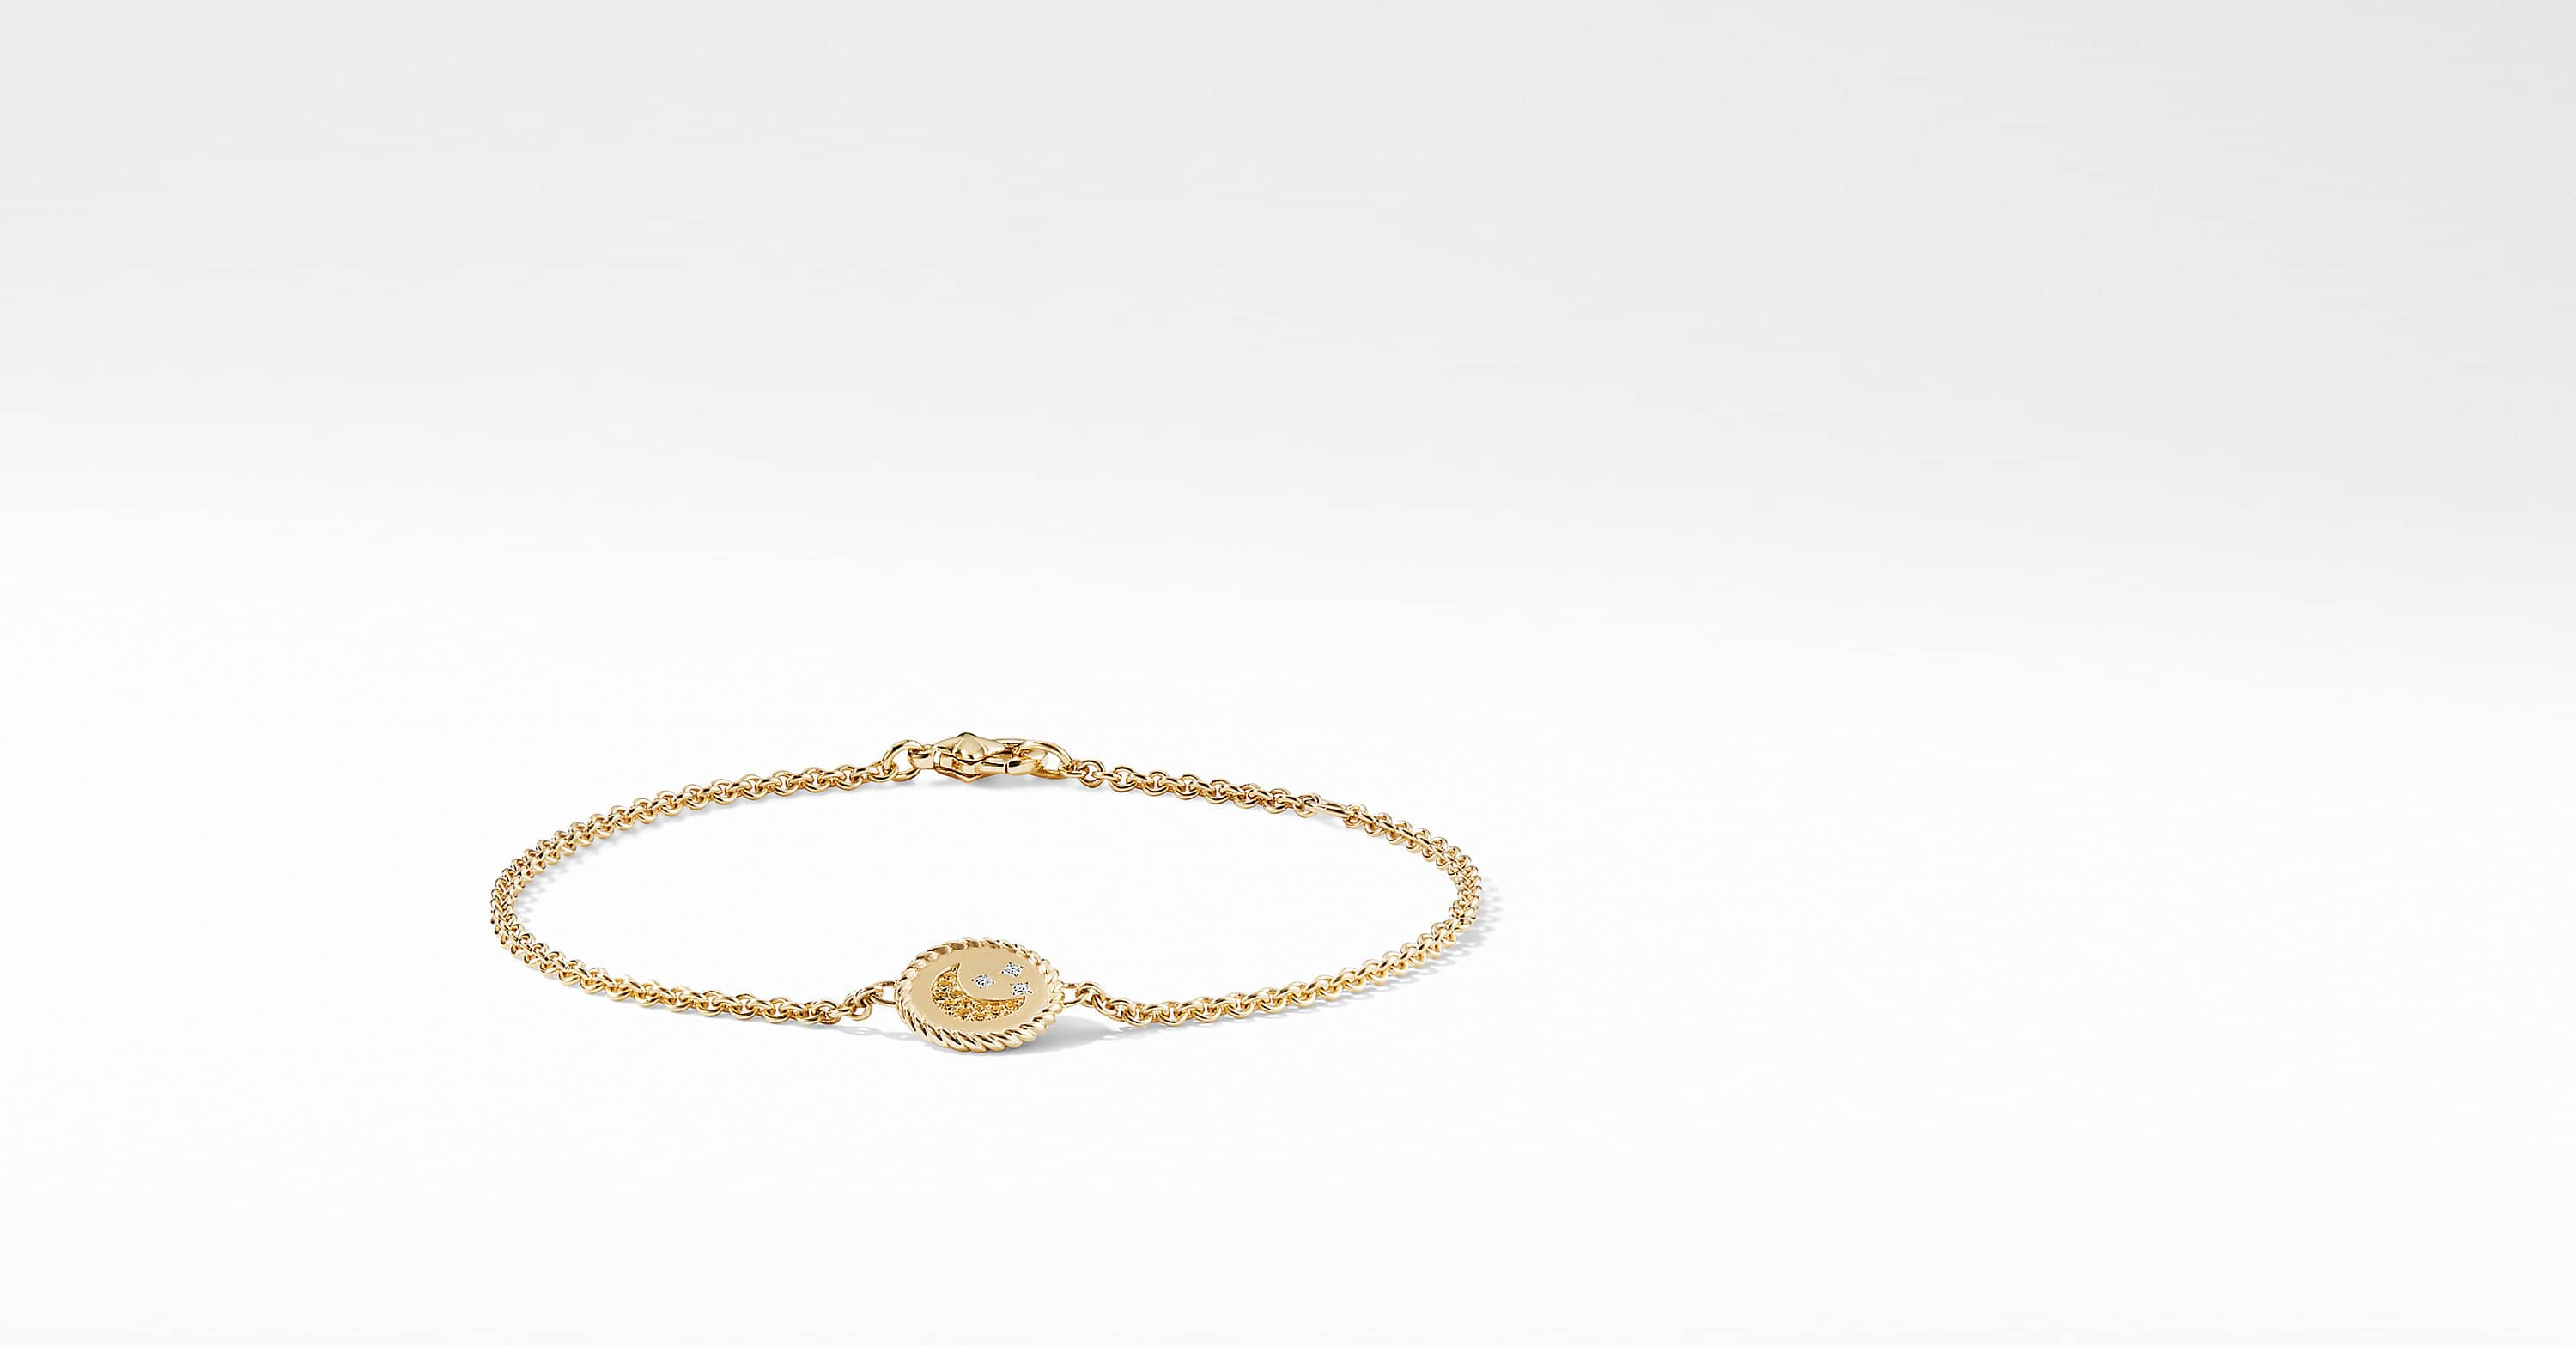 Cable Collectibles Moon and Stars Bracelet with Diamonds in 18K Gold